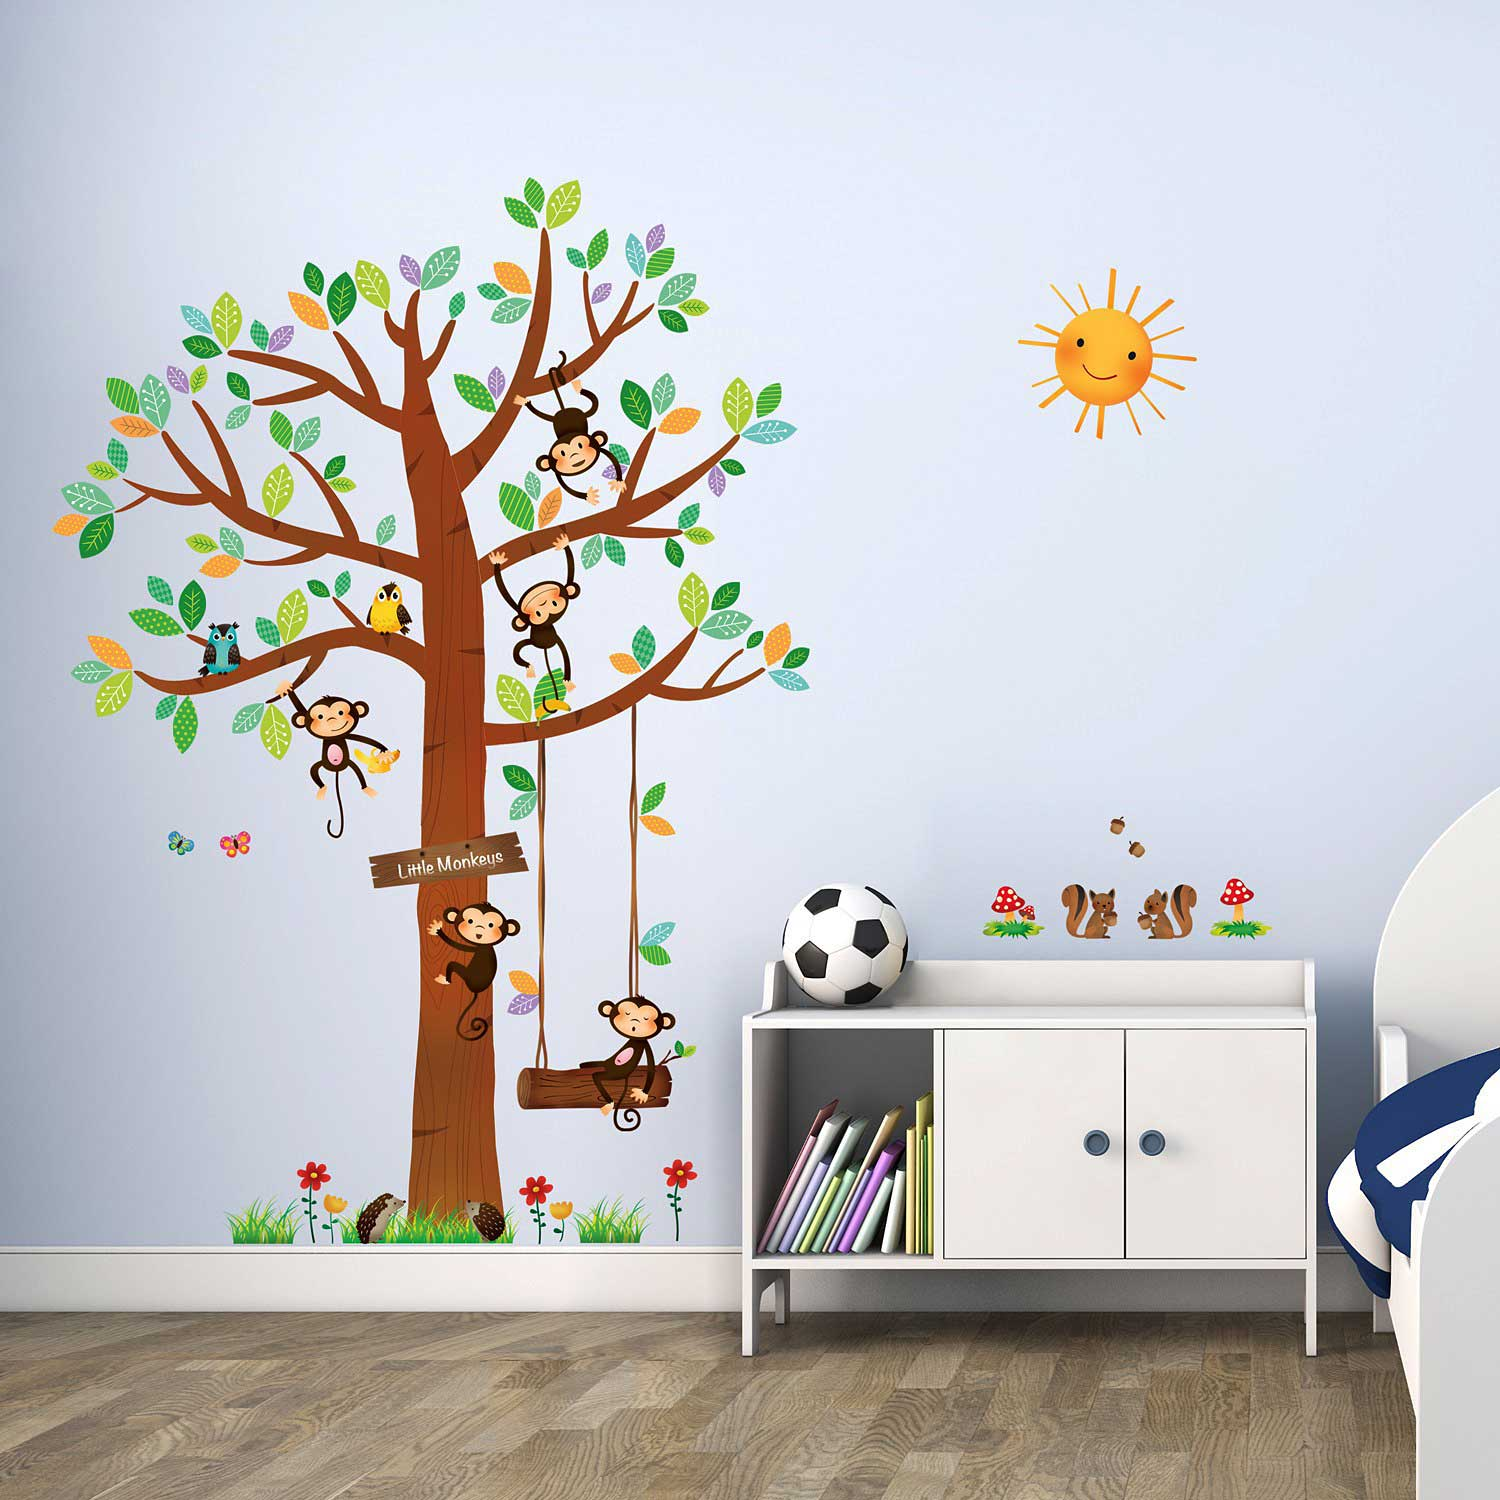 wandsticker 5 kleine affen auf dem baum wandsticker kinderzimmer. Black Bedroom Furniture Sets. Home Design Ideas